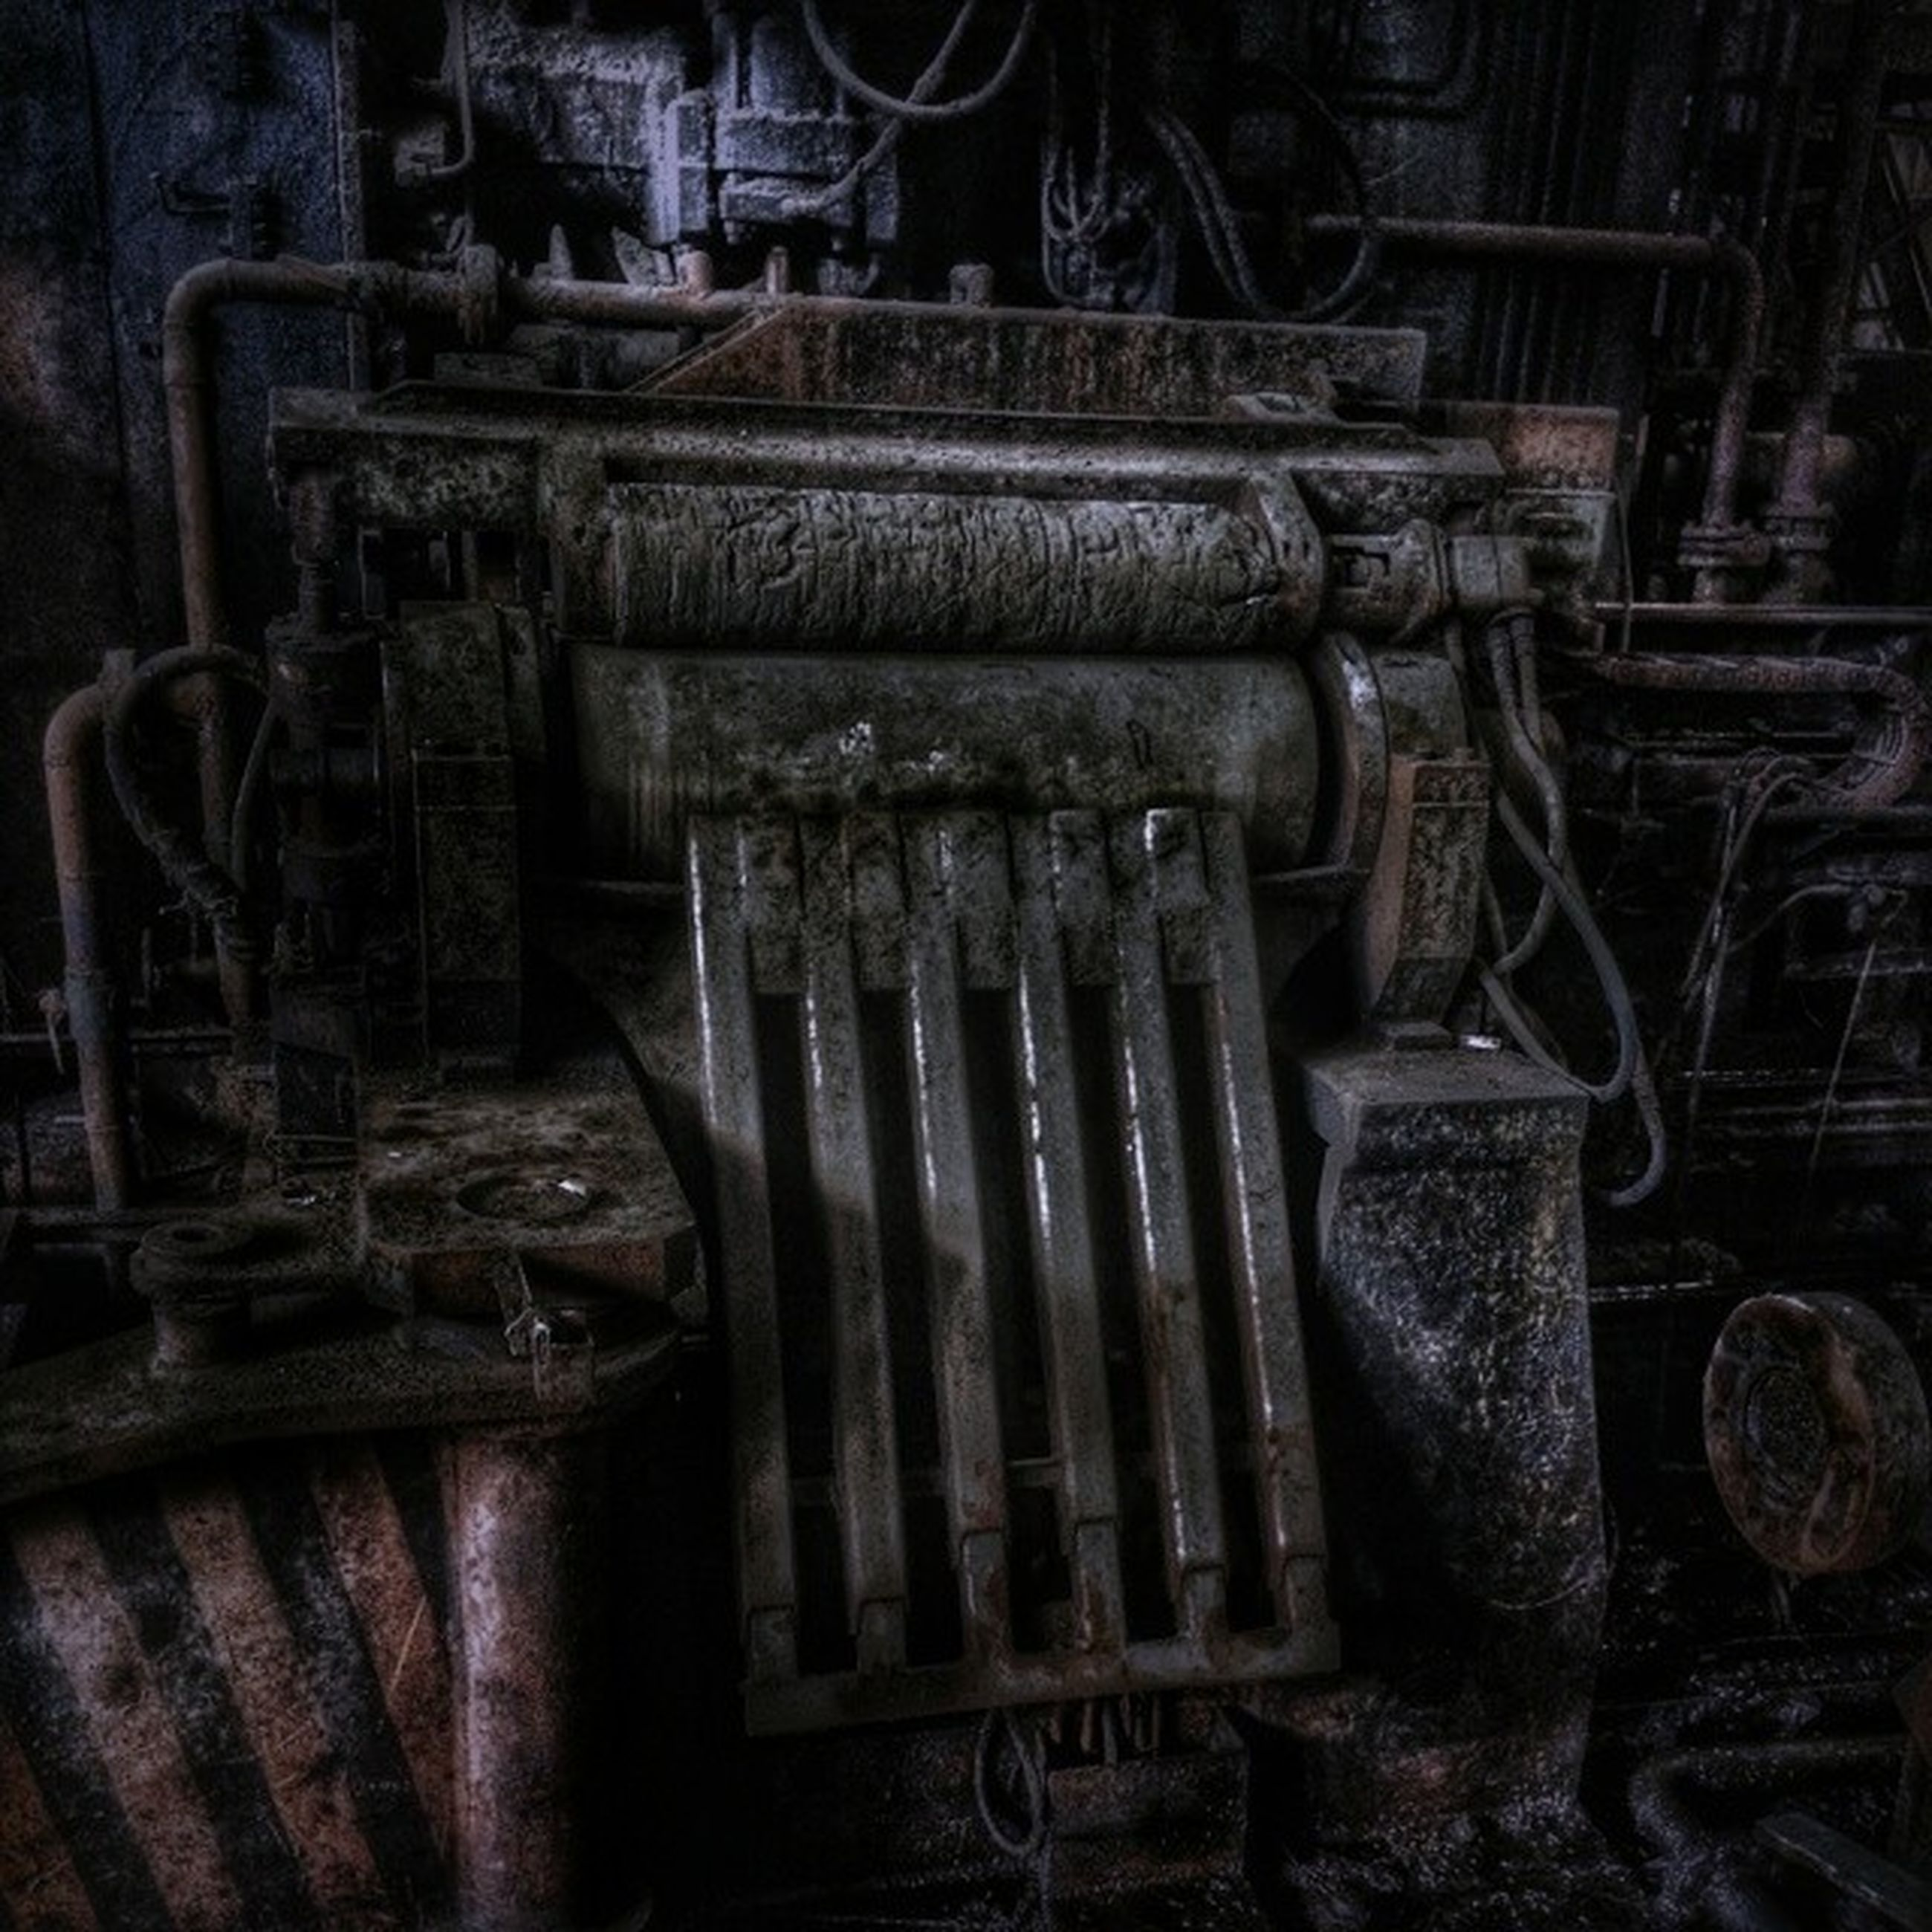 indoors, old, metal, obsolete, abandoned, rusty, close-up, damaged, run-down, industry, wood - material, deterioration, still life, factory, metallic, old-fashioned, no people, machinery, machine part, the past